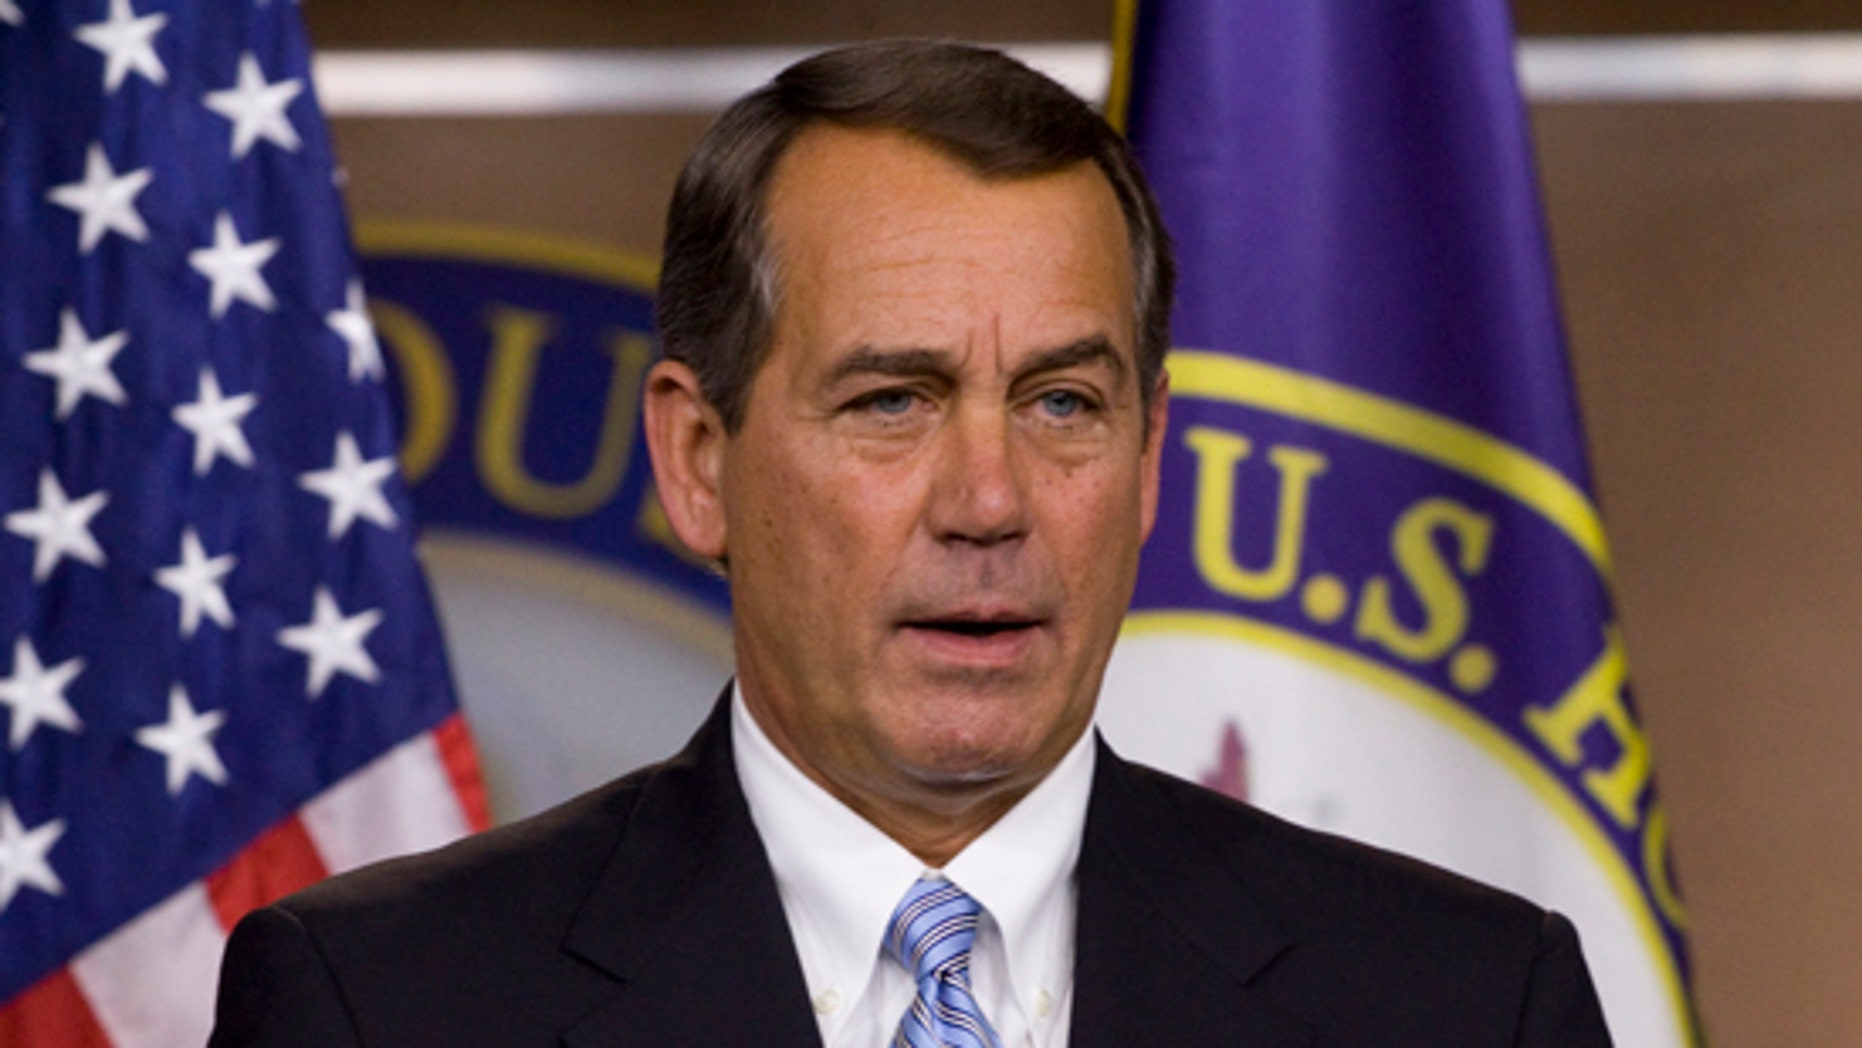 House Minority Leader John Boehner of Ohio speaks at a news conference on Capitol Hill in Washington, Thursday, March 25, 2010. (AP)